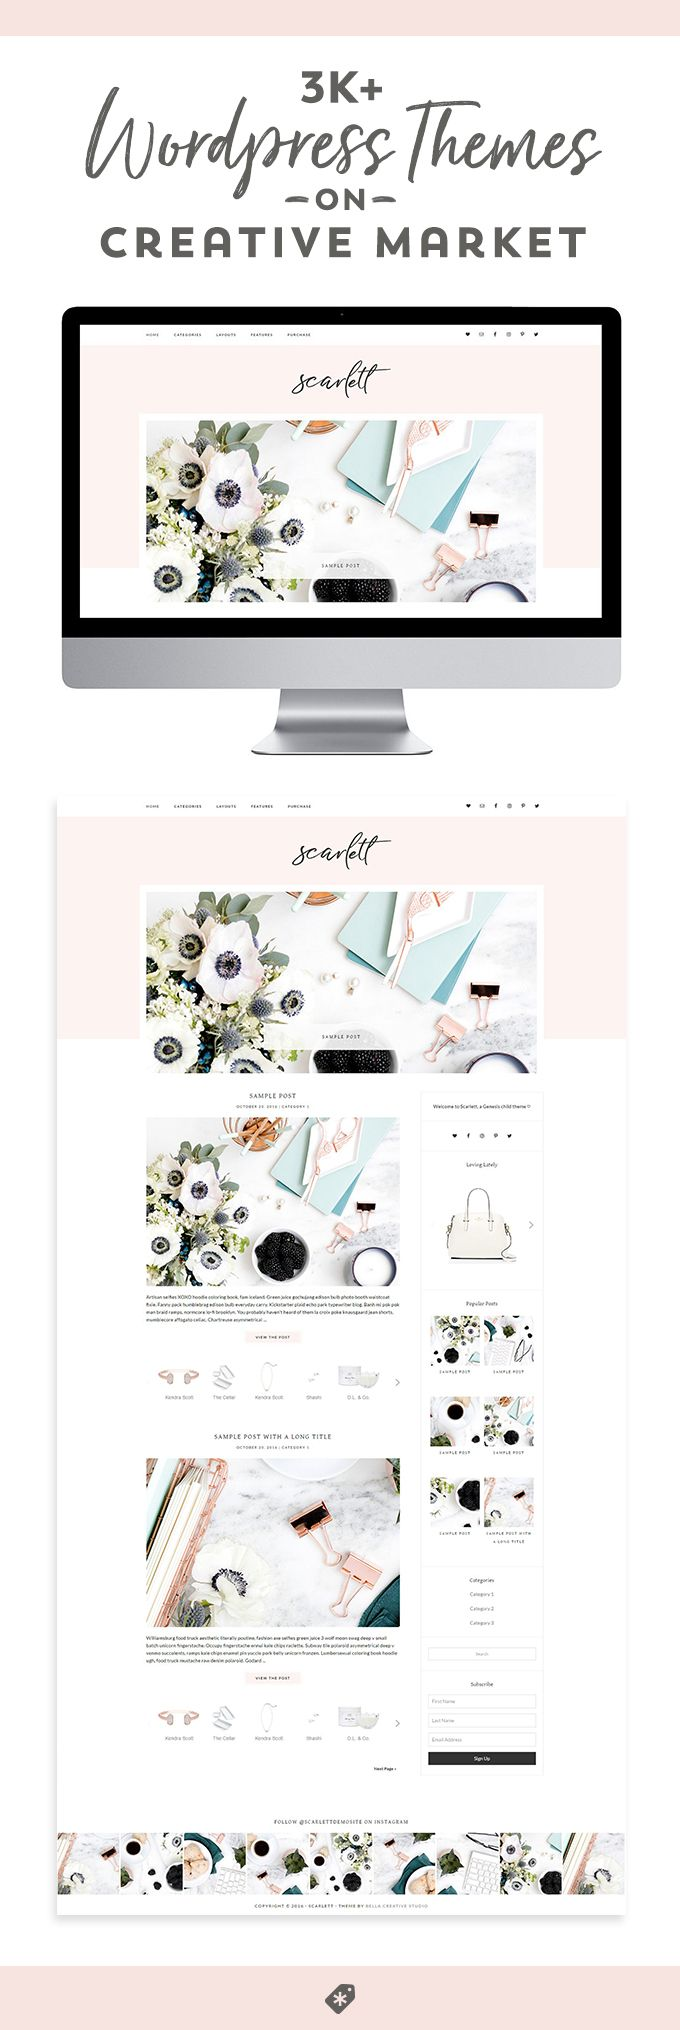 Find the perfect Wordpress theme for your blog or e-commerce site!